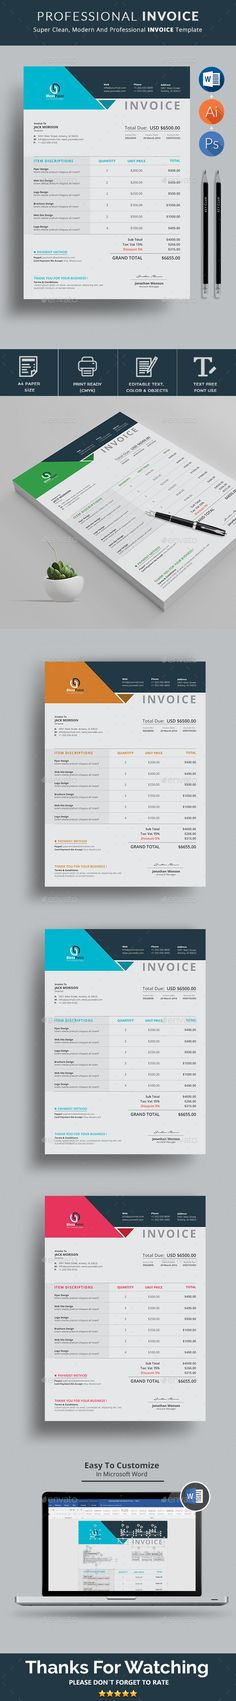 Create An Invoice In Excel Stunning Invoice Template Vol 02 — Photoshop Psd #corporate Invoice #print .